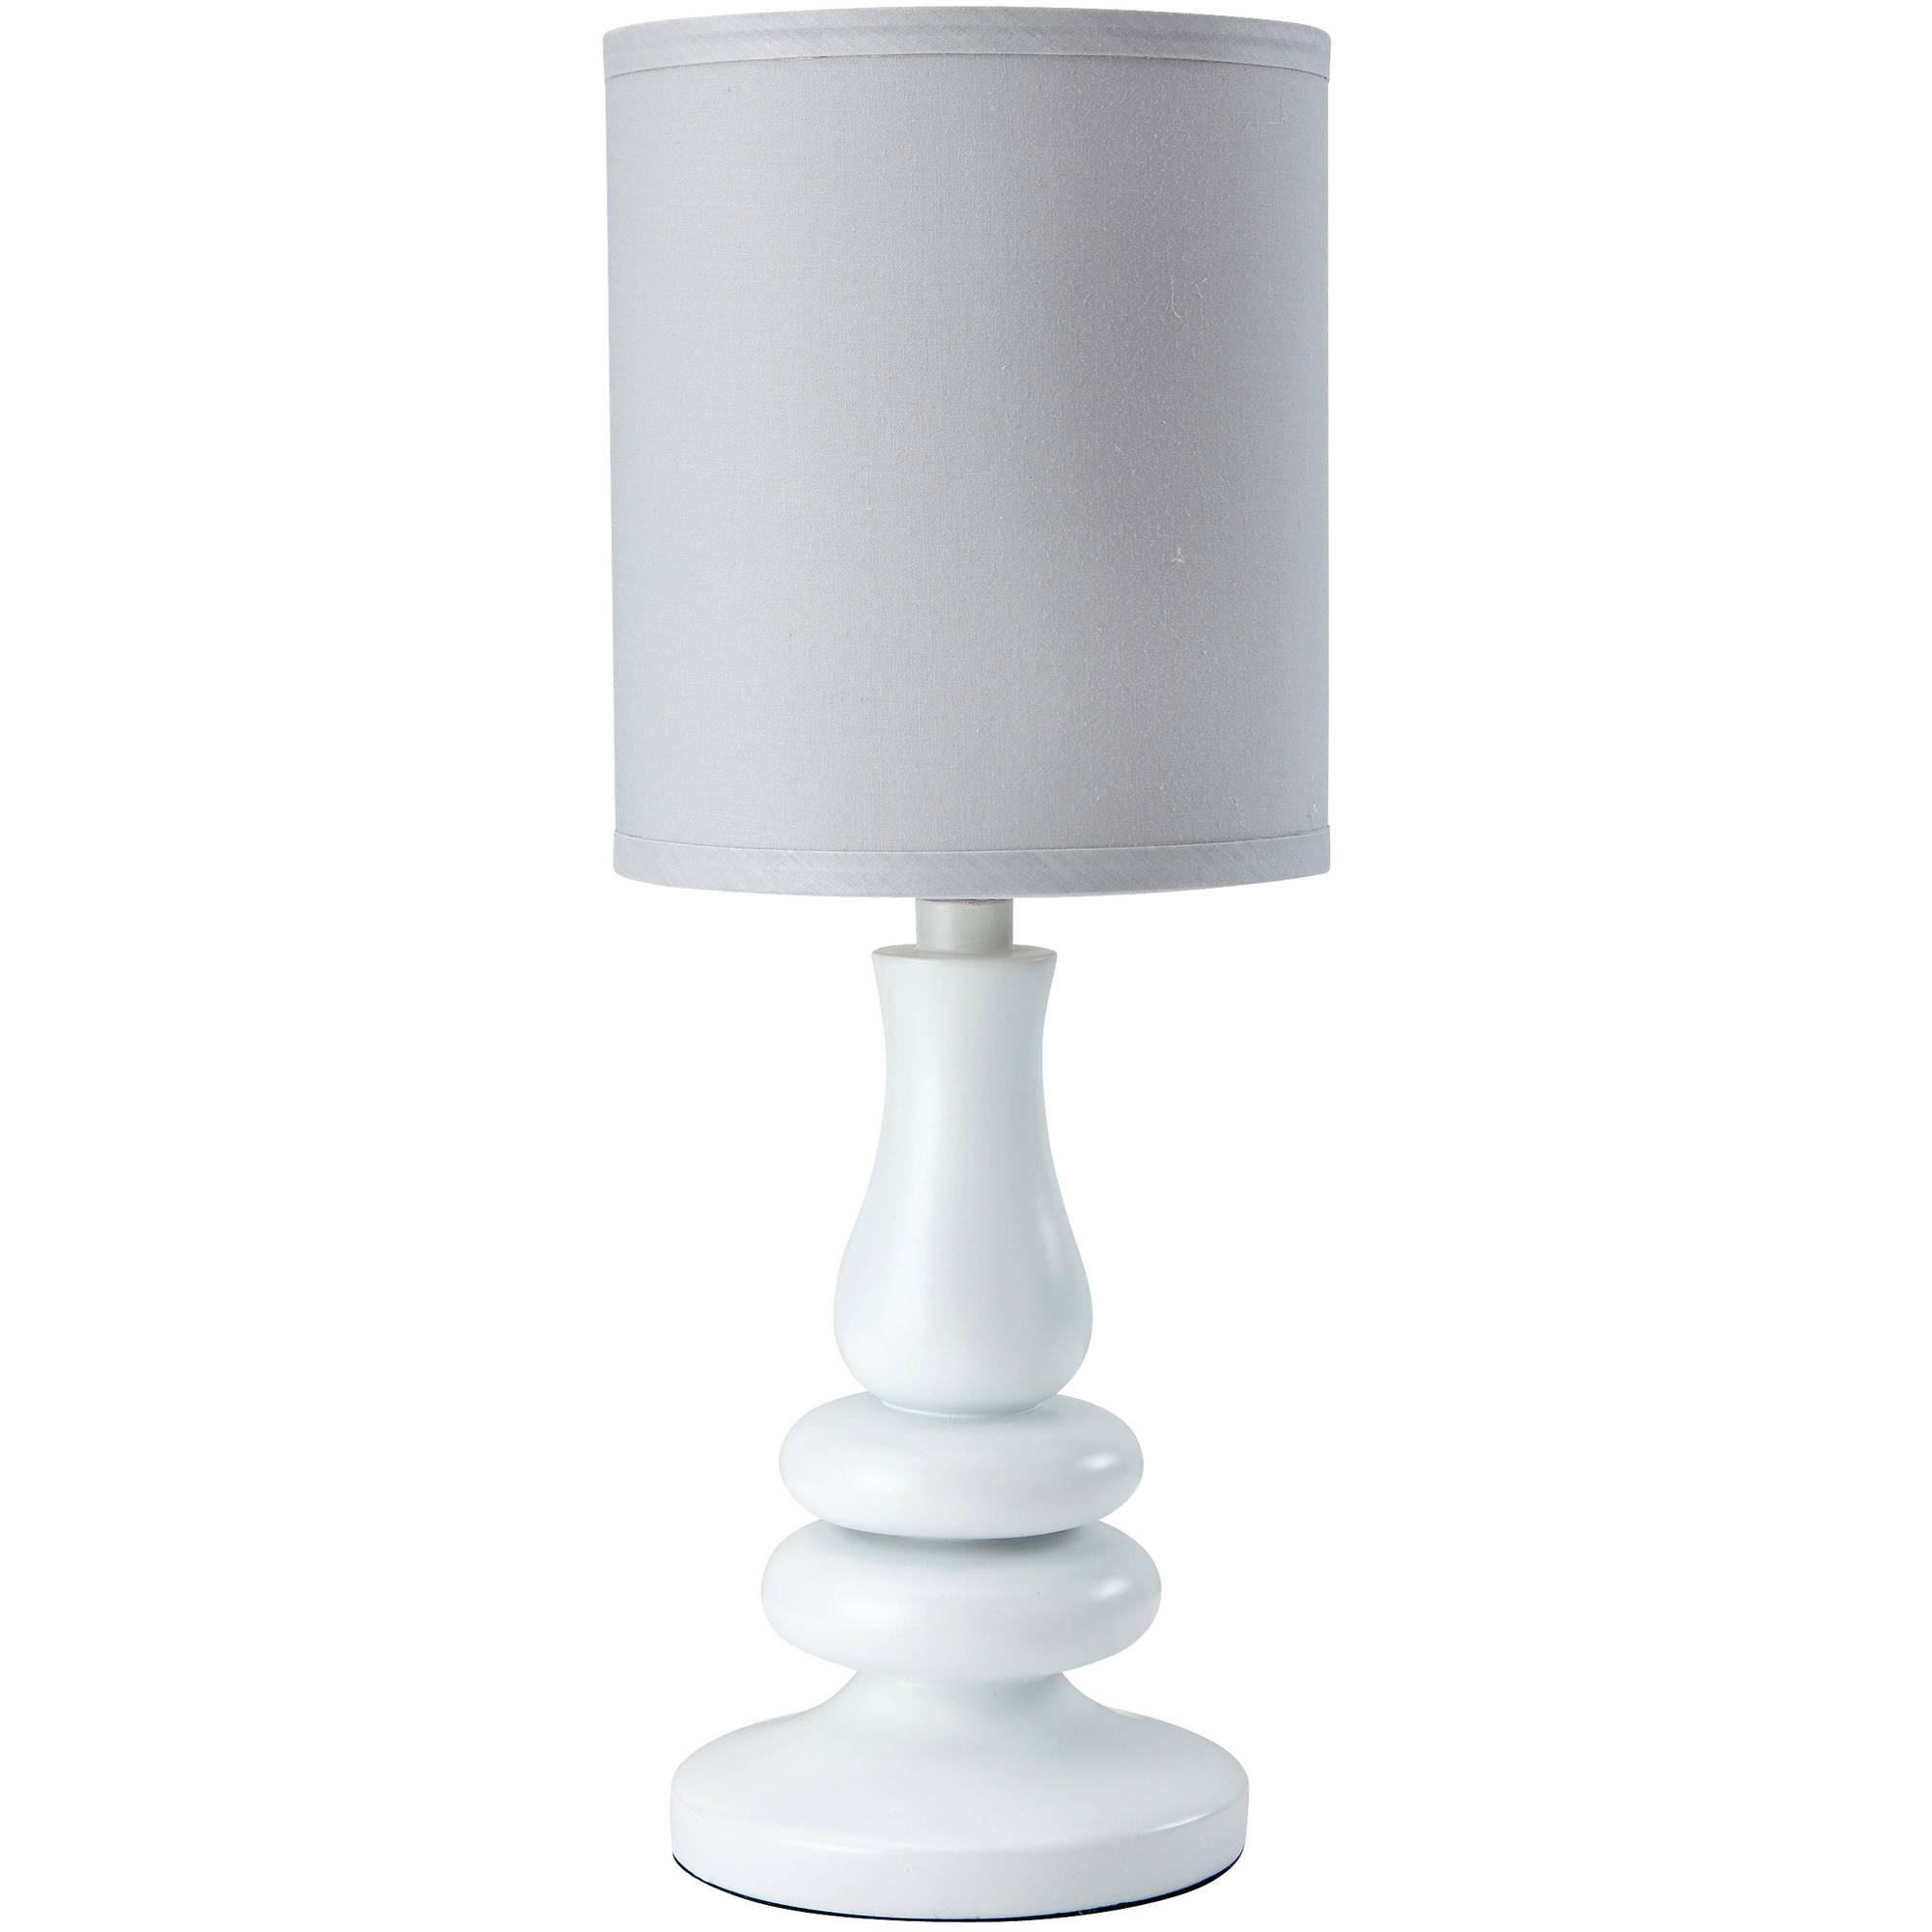 Little Love Lamp & Shade, White Grey by Little Love by NoJo